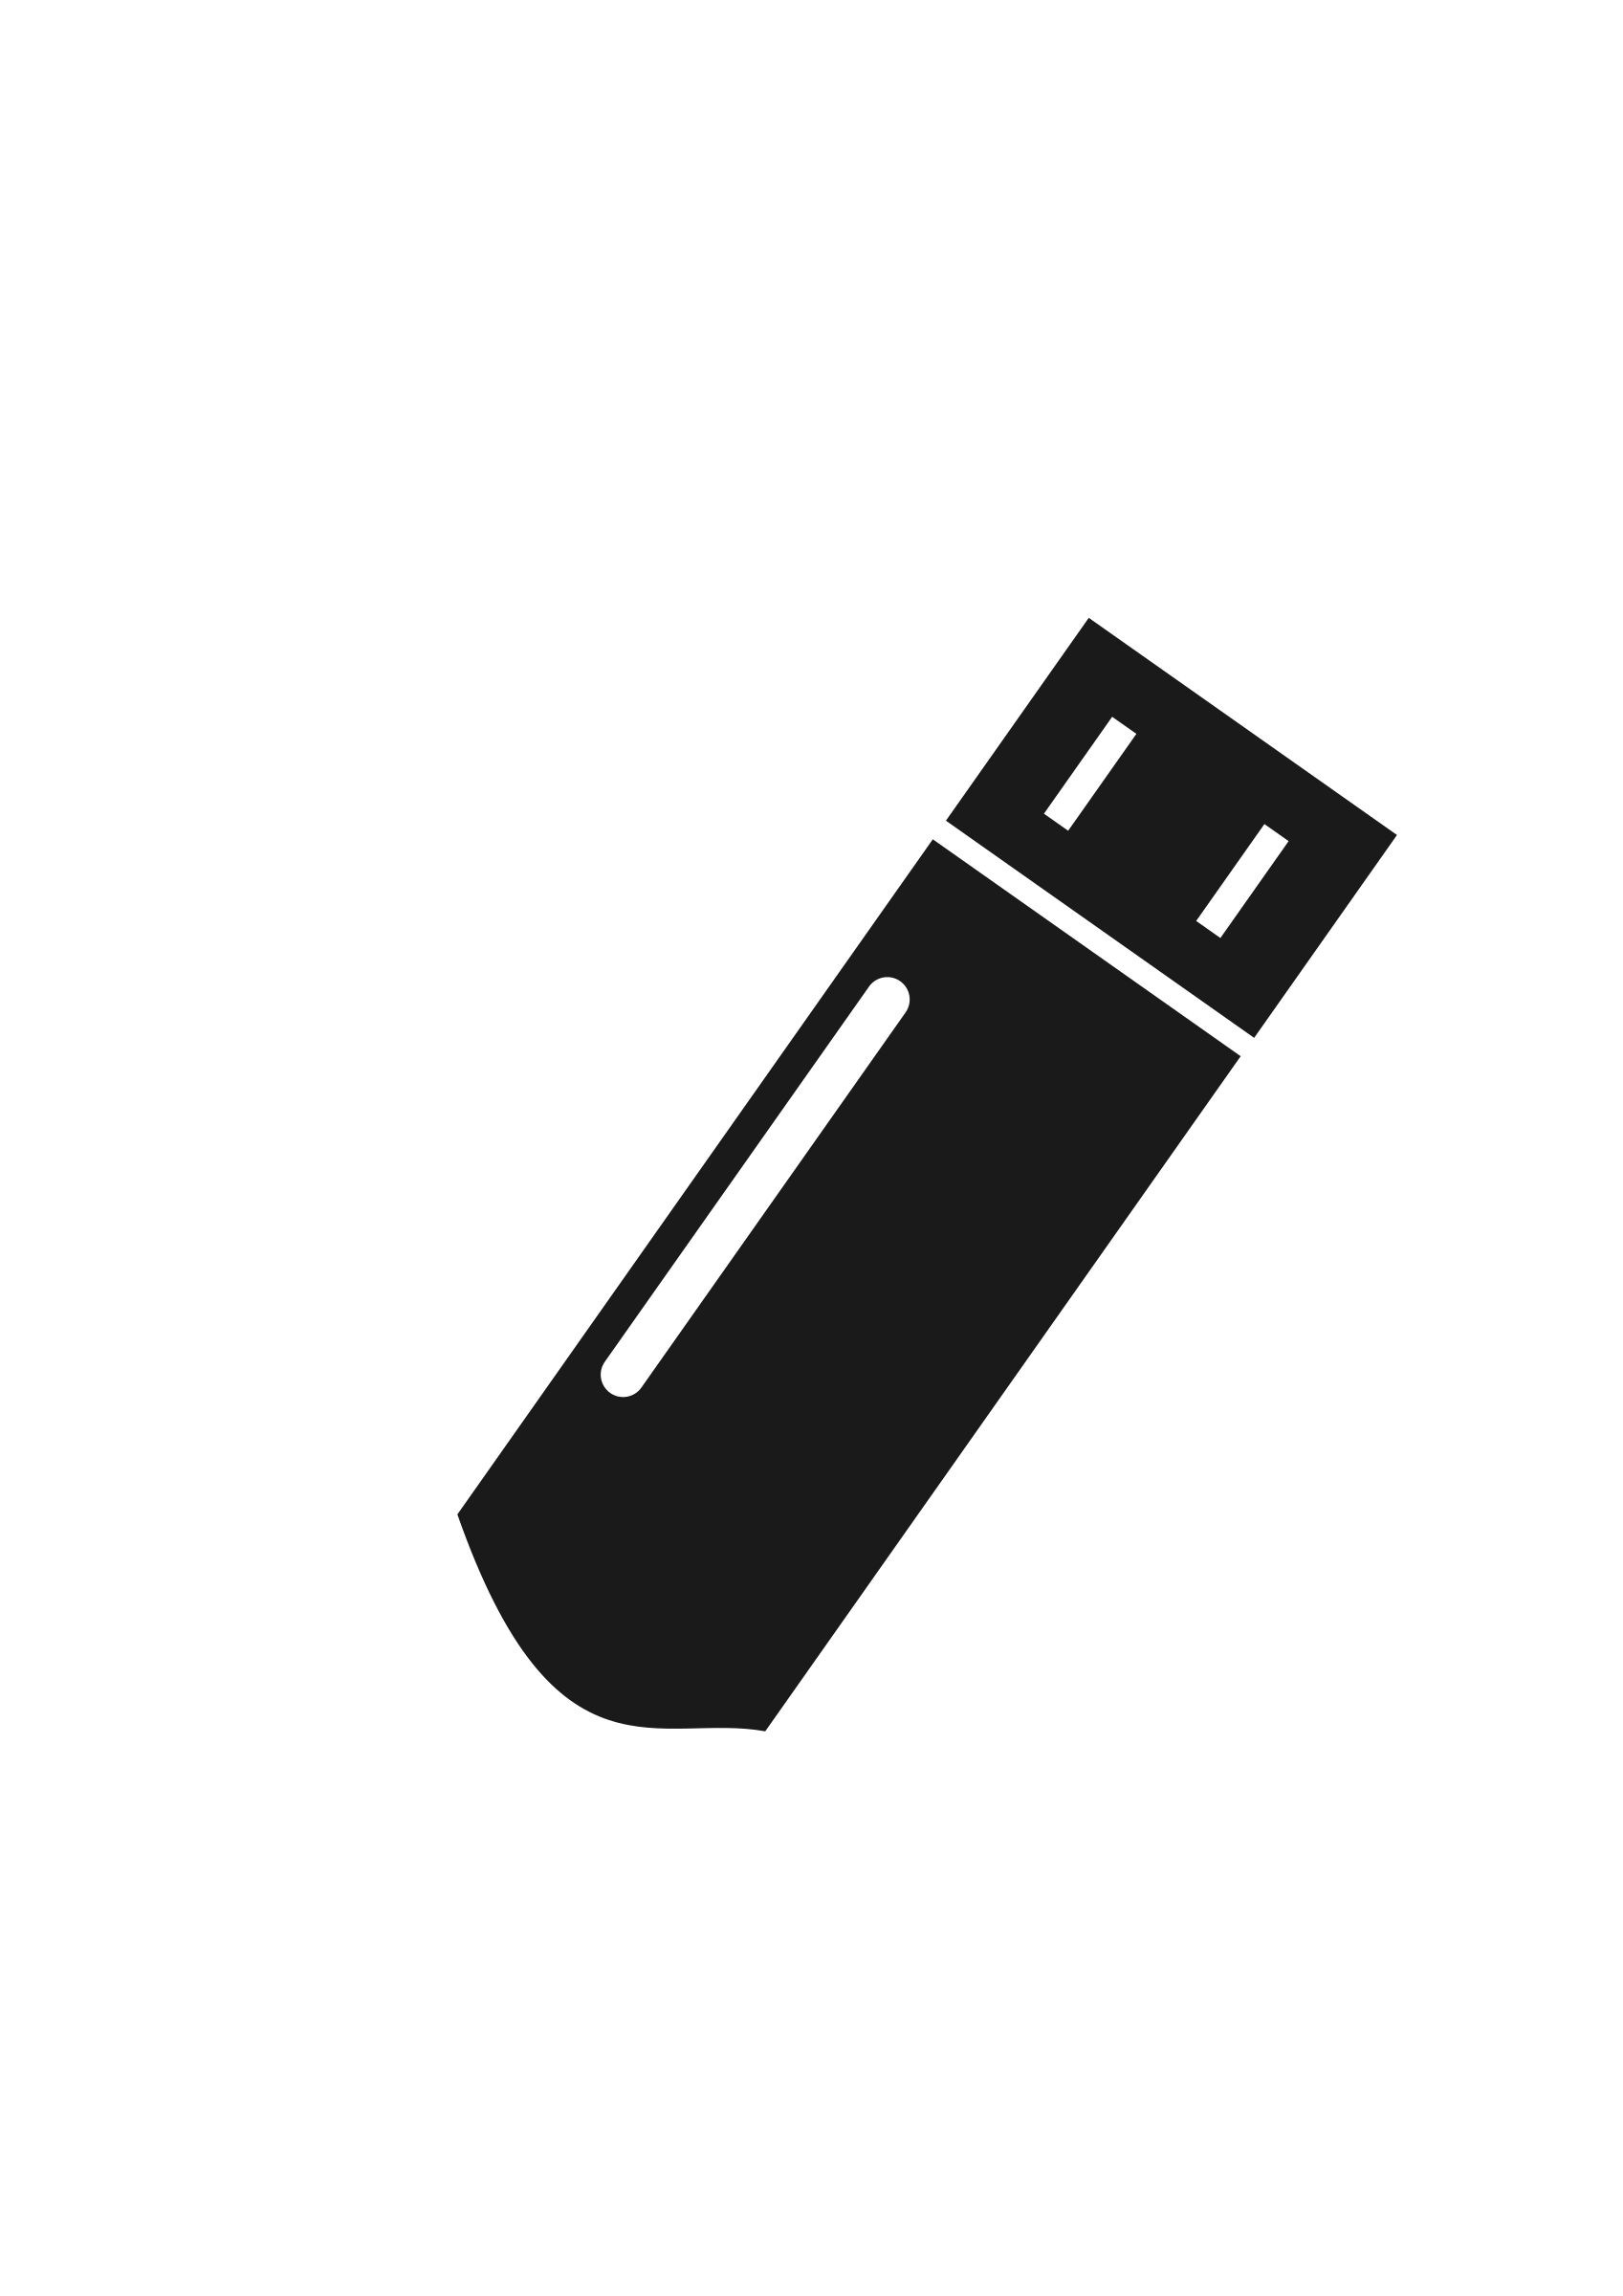 Pendrive by athithya